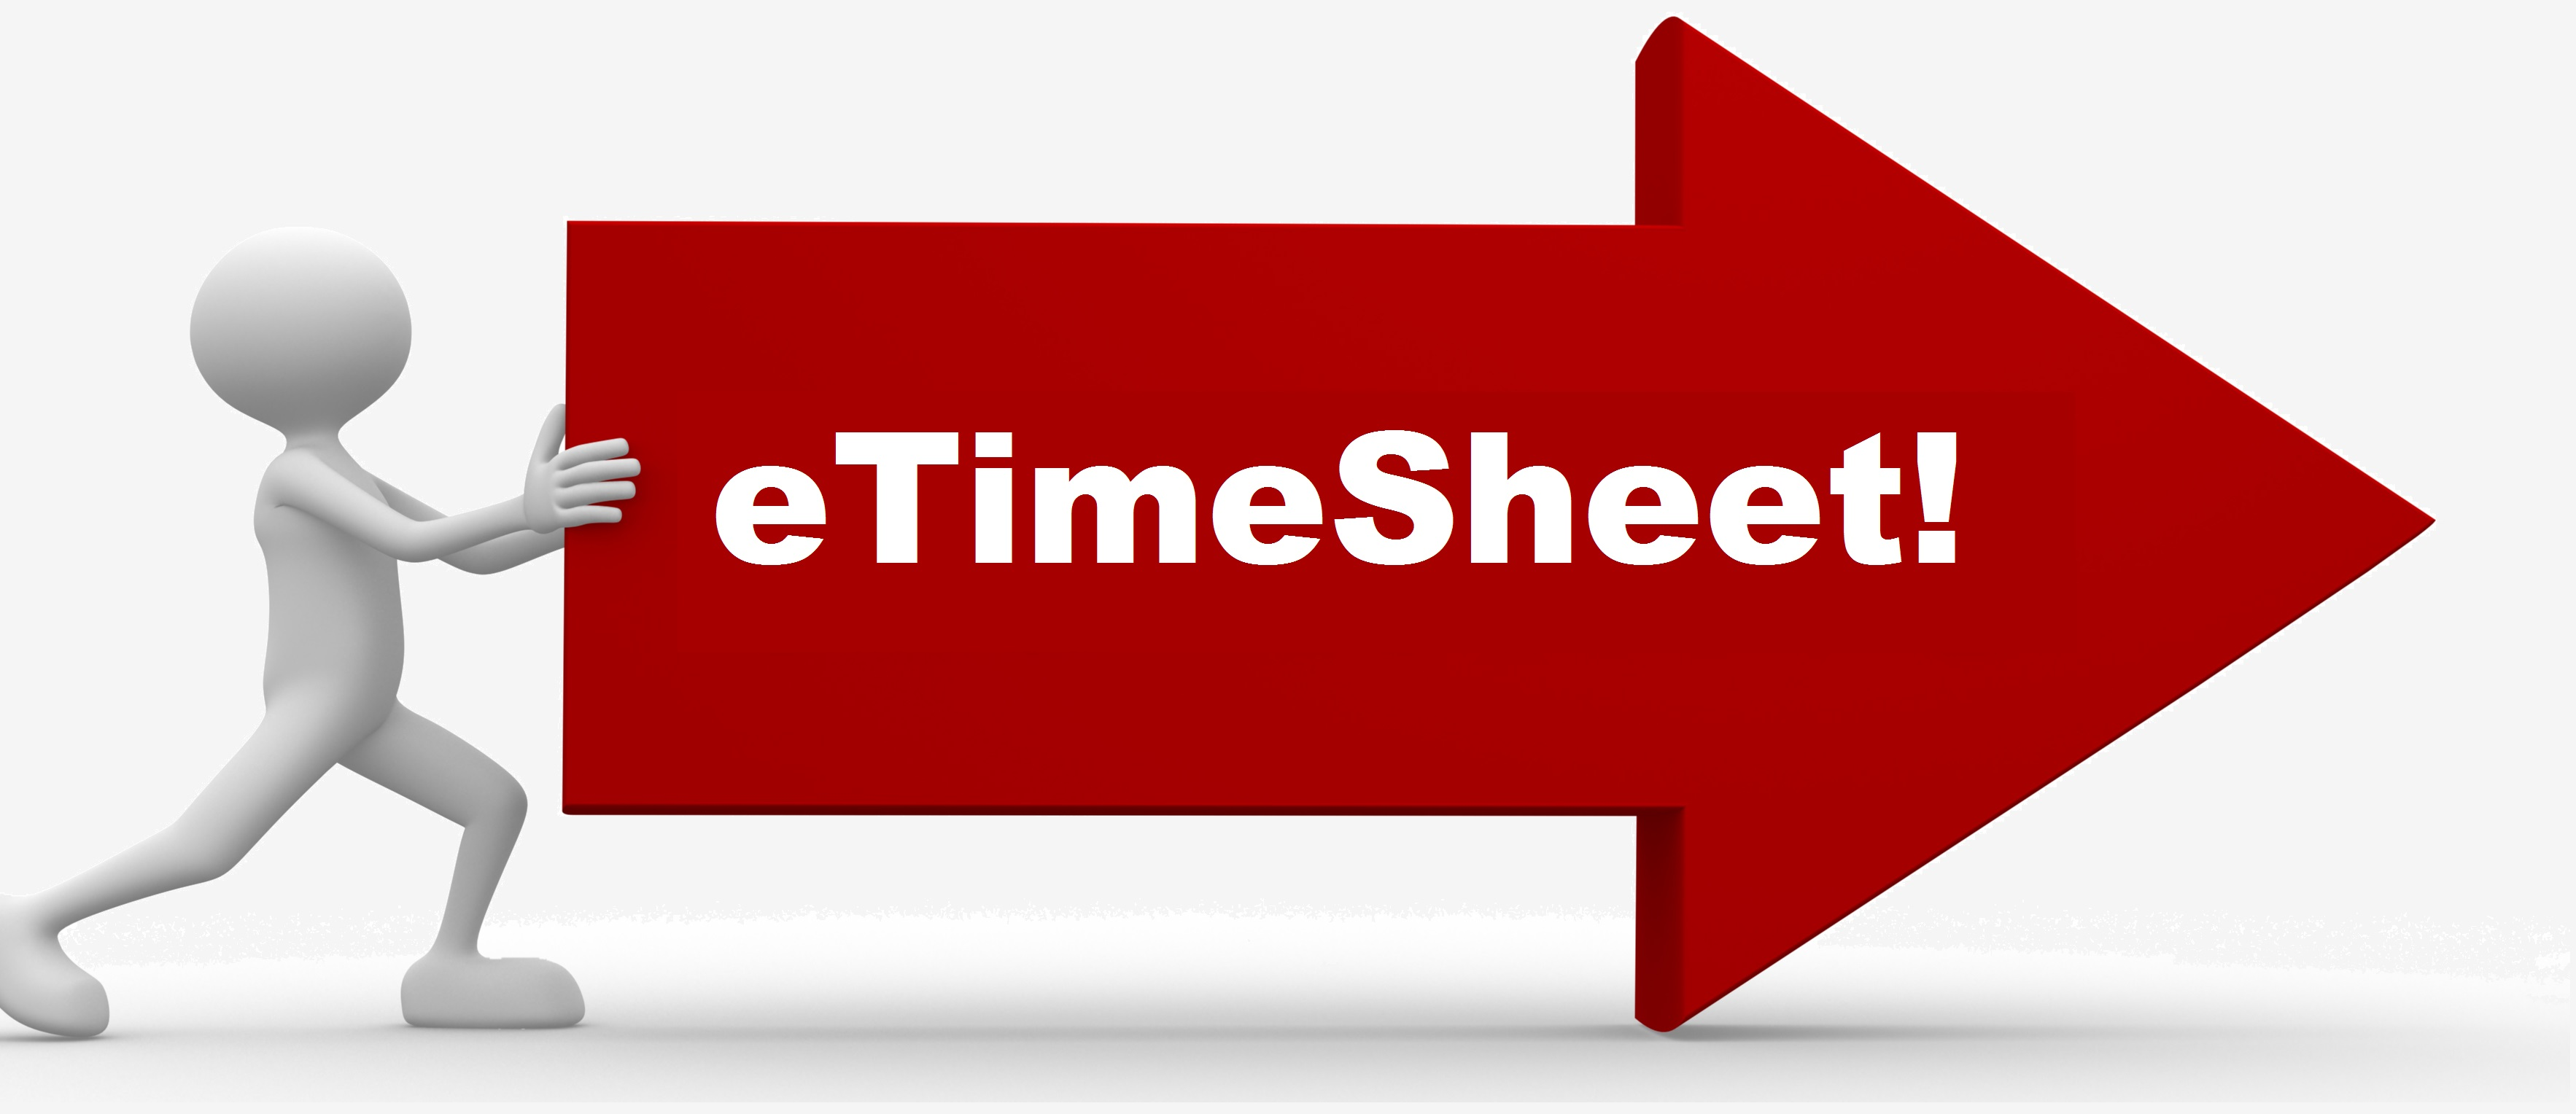 eTime Sheets are here